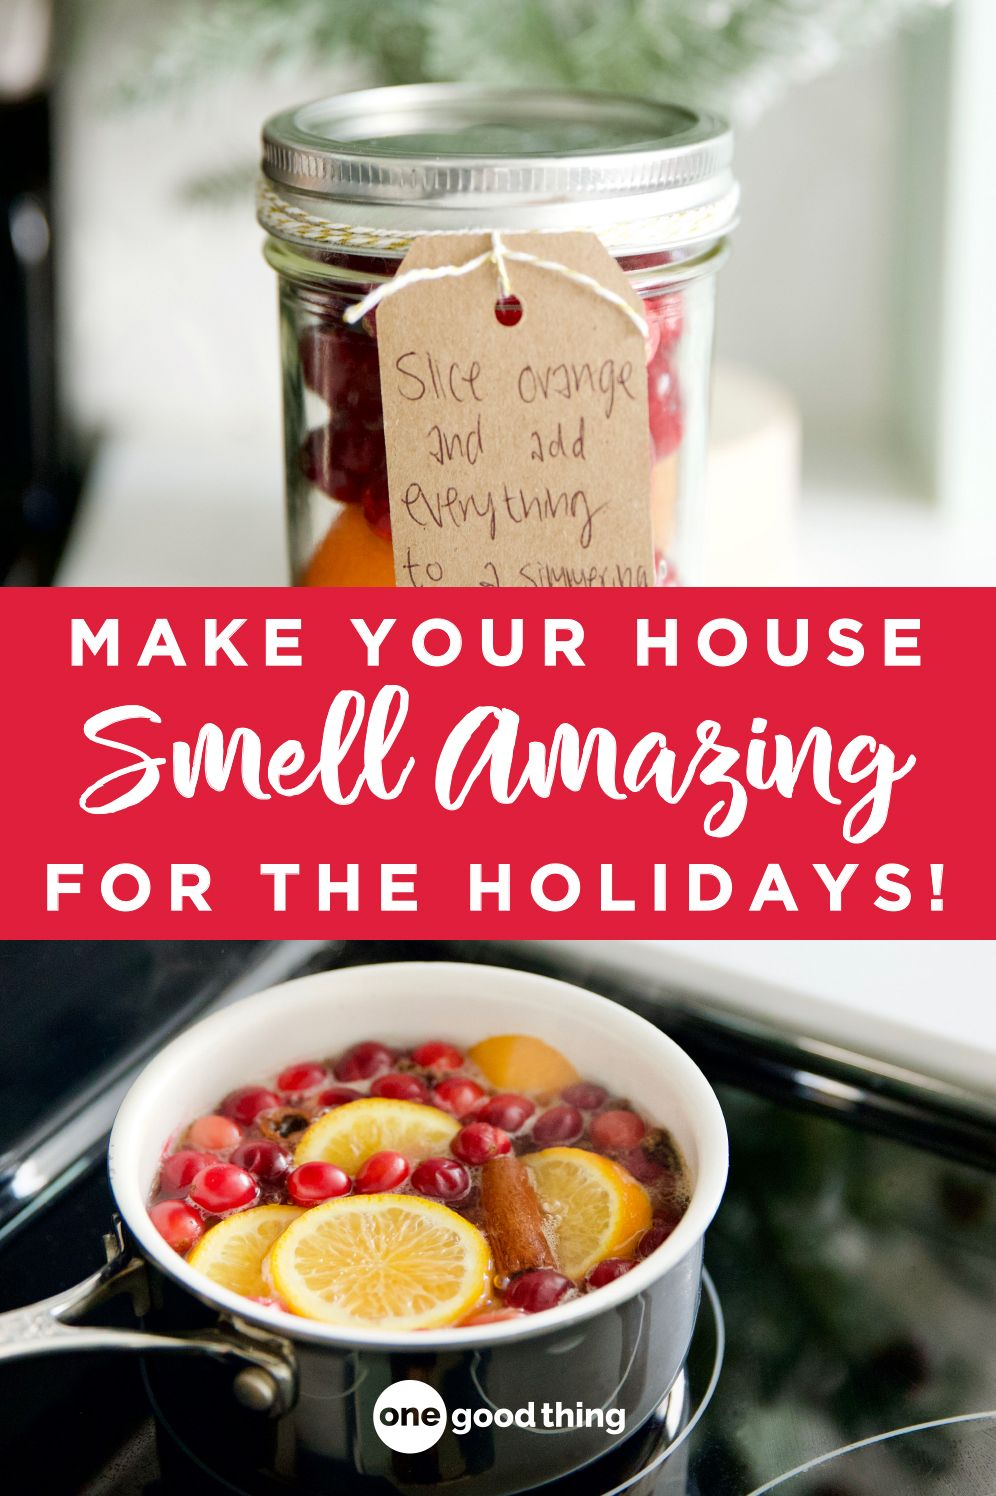 Simmering potpourri is an easy and inexpensive way to make your home smell like the holidays! Learn how to make it here, and how to give it as a gift too! #Christmas #potpourri